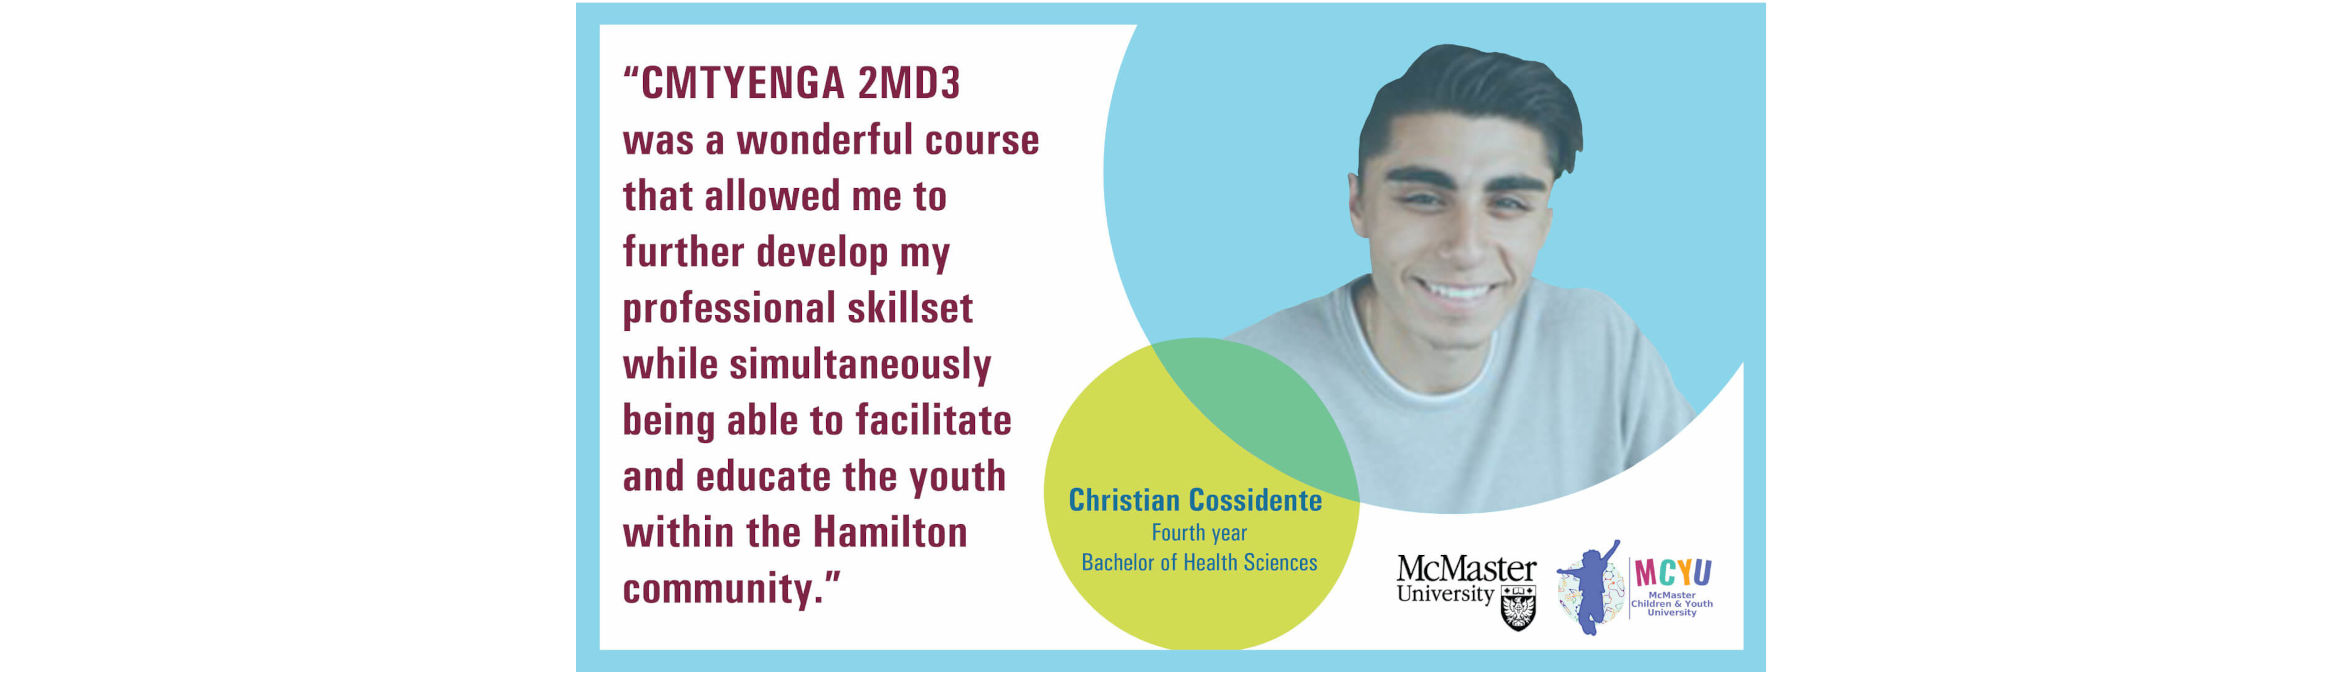 Christian Cossidente: CMTYENGA 2MD3 was a wonderful course that allowed me to further develop my professional skill set while simultaneously being able to facilitate and educate the youth within the Hamilton community.